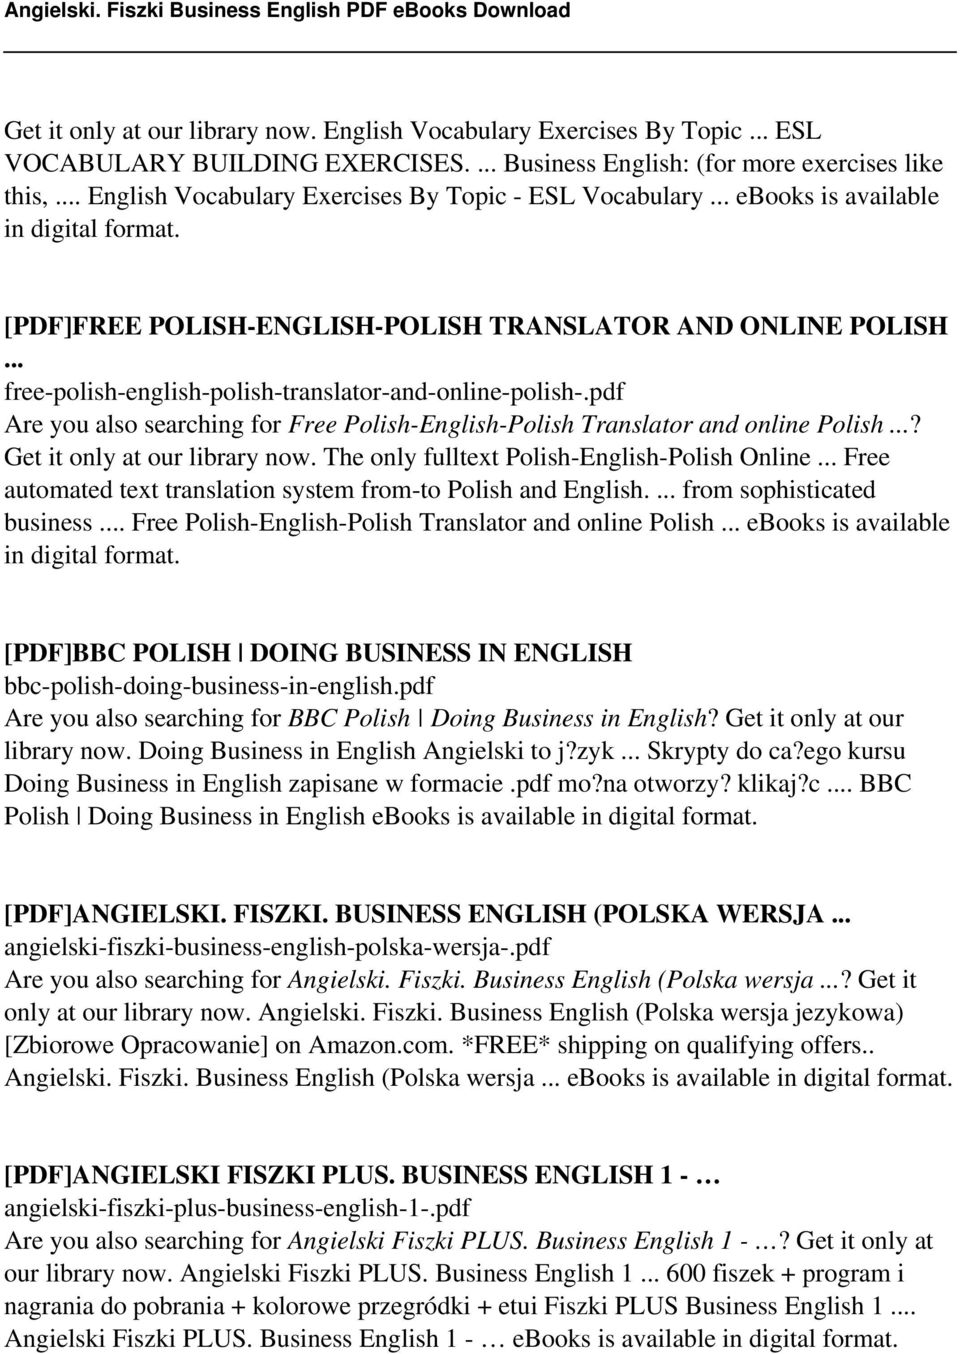 .. free-polish-english-polish-translator-and-online-polish-.pdf Are you also searching for Free Polish-English-Polish Translator and online Polish...? Get it only at our library now.